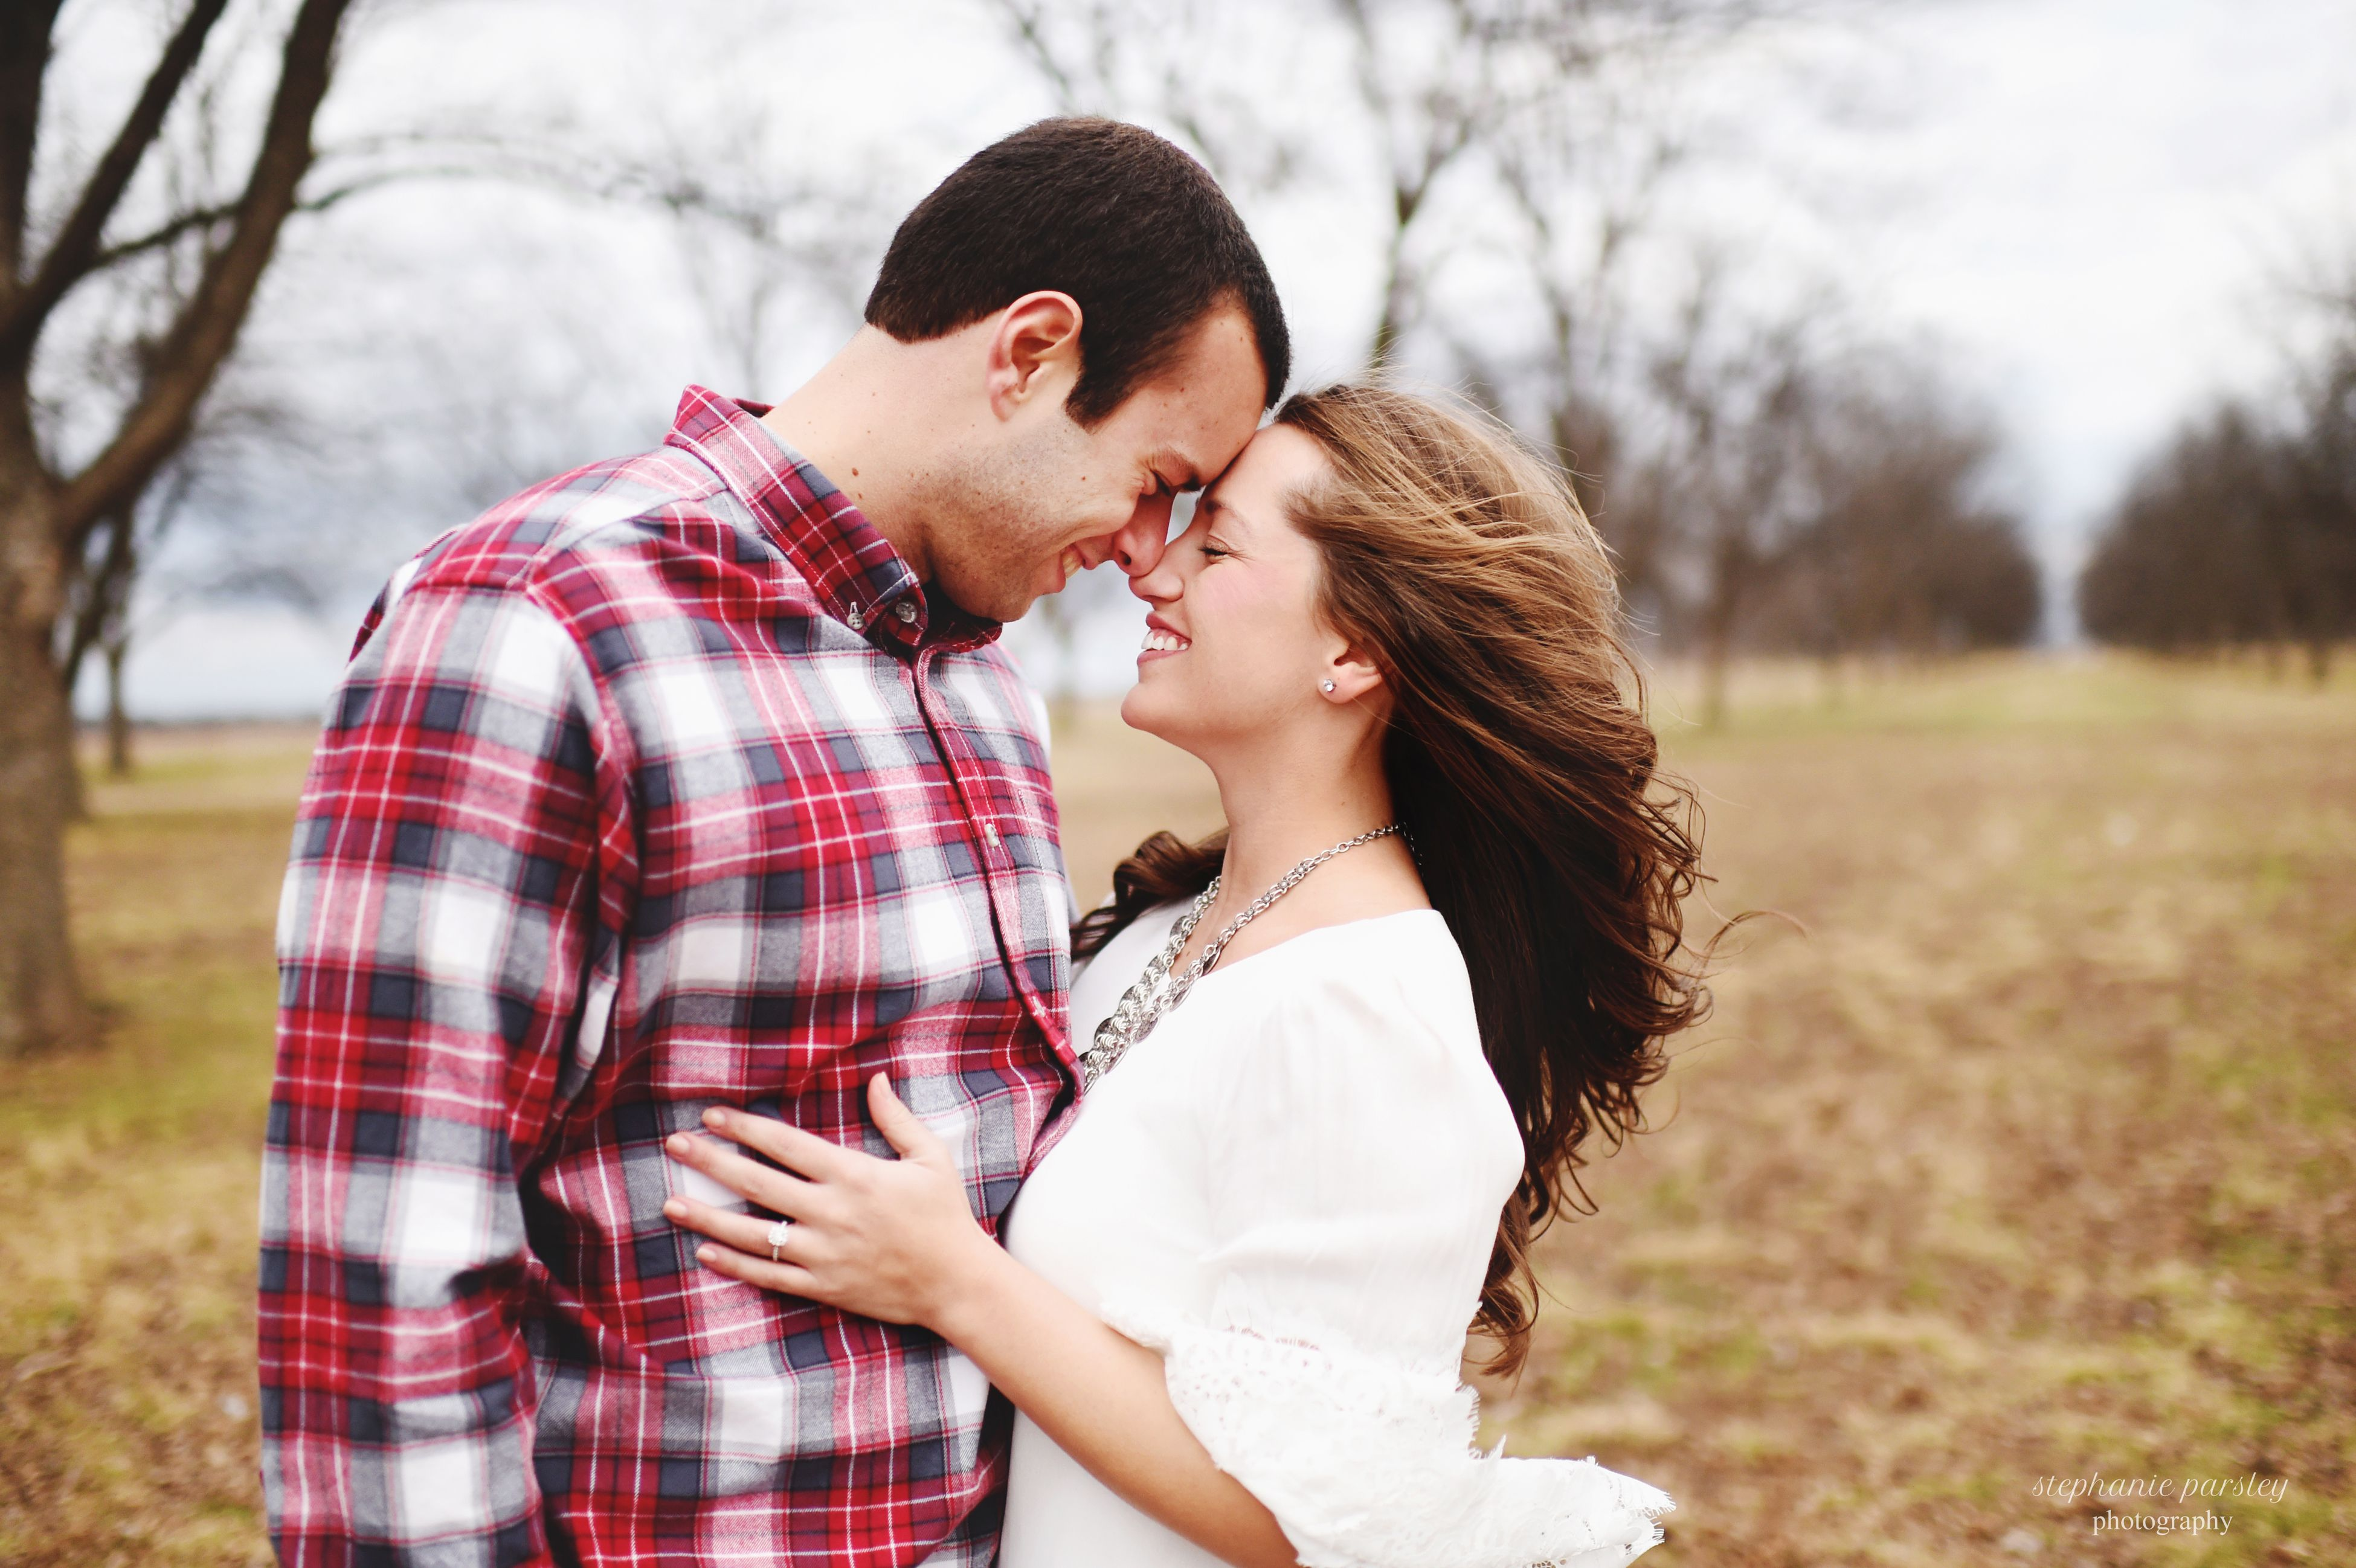 Courtney + Paul | Engagements | Stephanie Parsley Photography